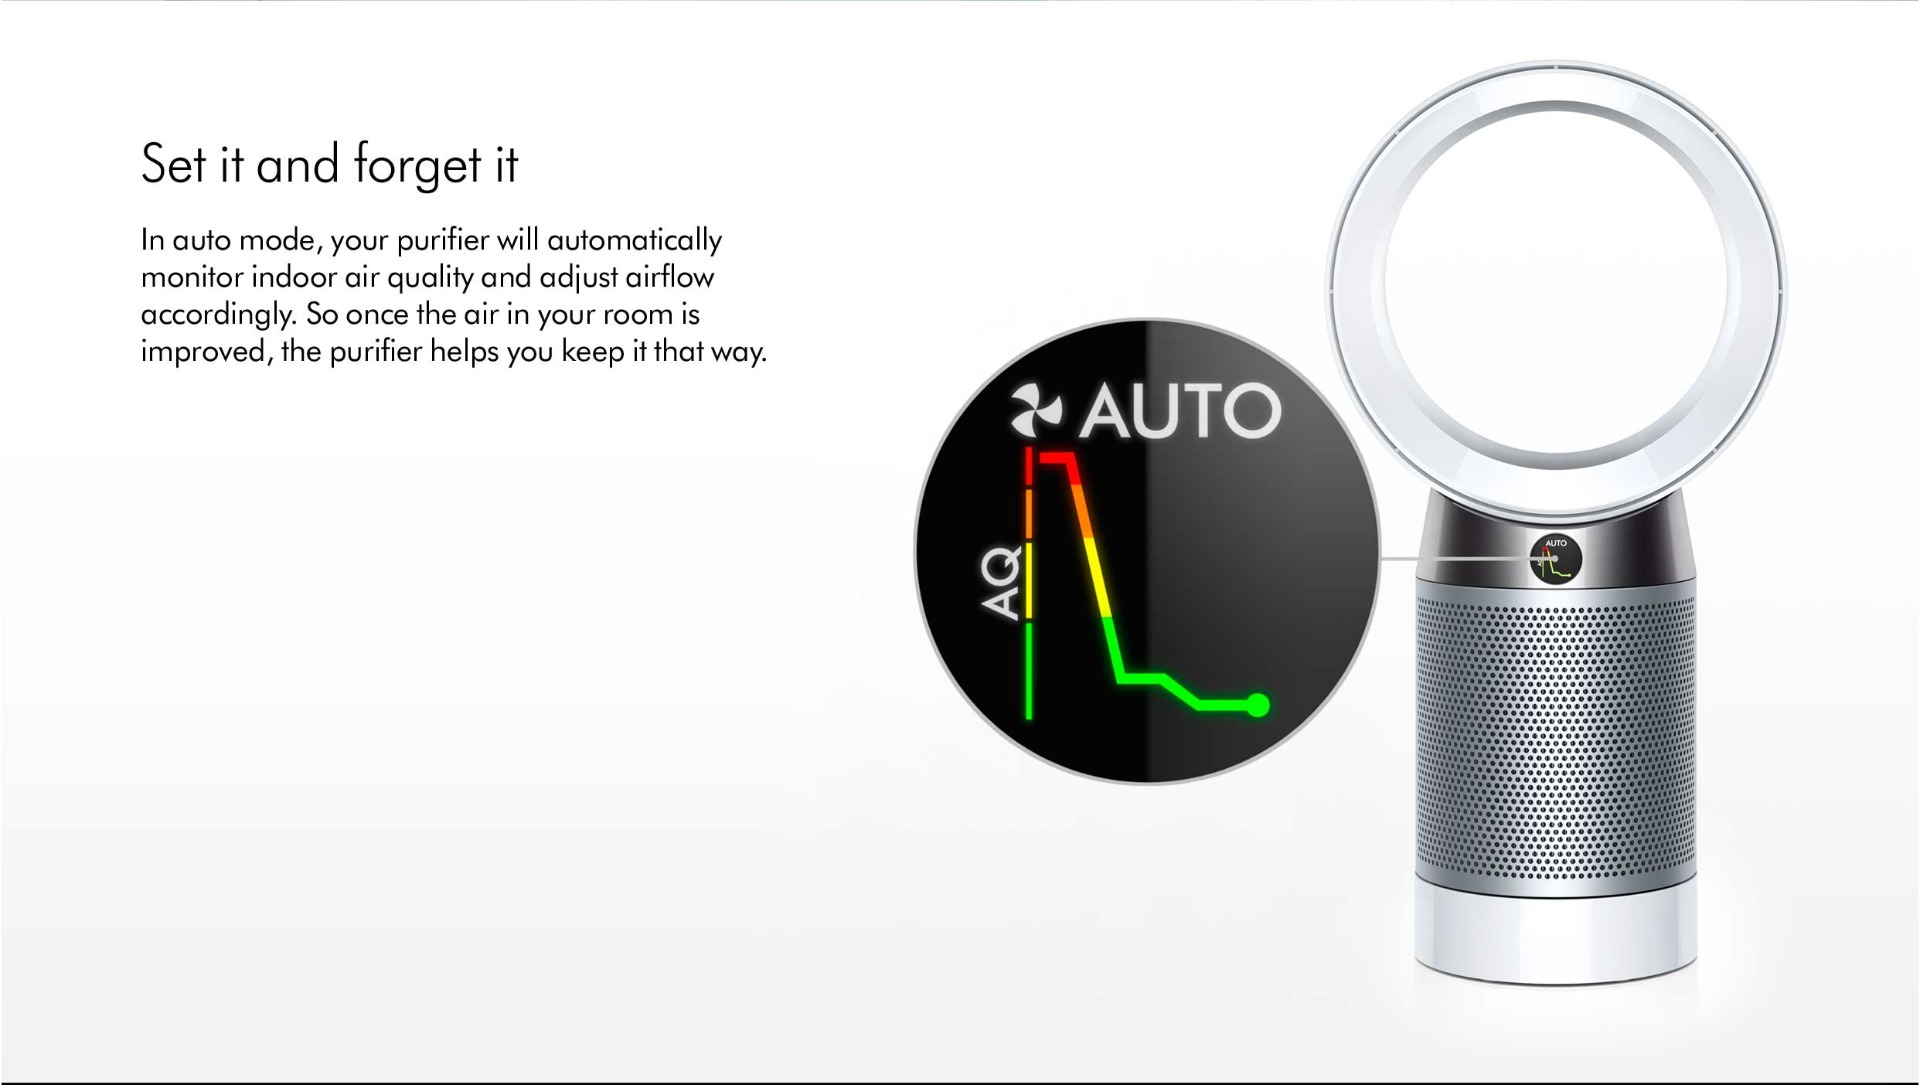 Automatic mode continually monitor`s air quality and adjusts its self as necessary